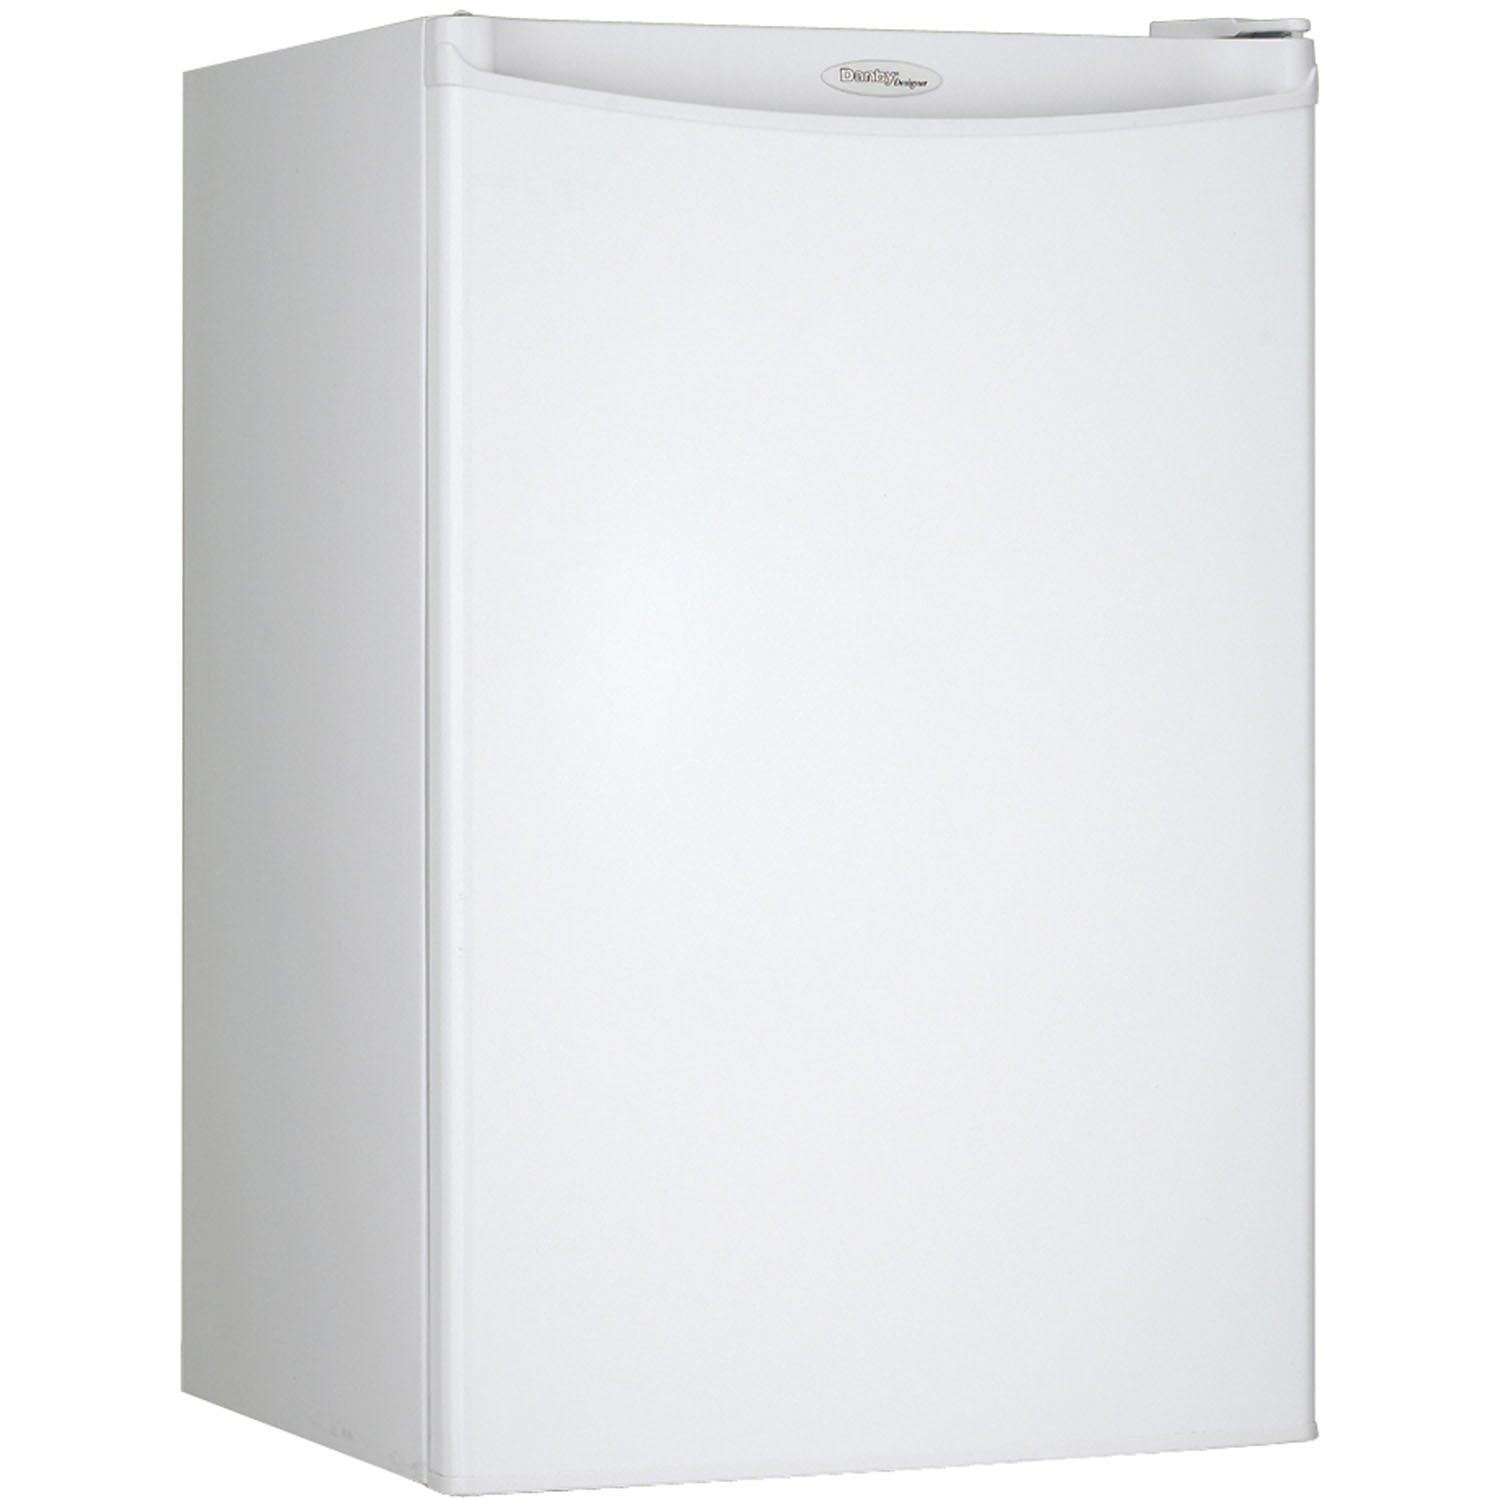 Danby DAR044A4WDD Compact All Refrigerator, 4.4 Cubic Feet, White